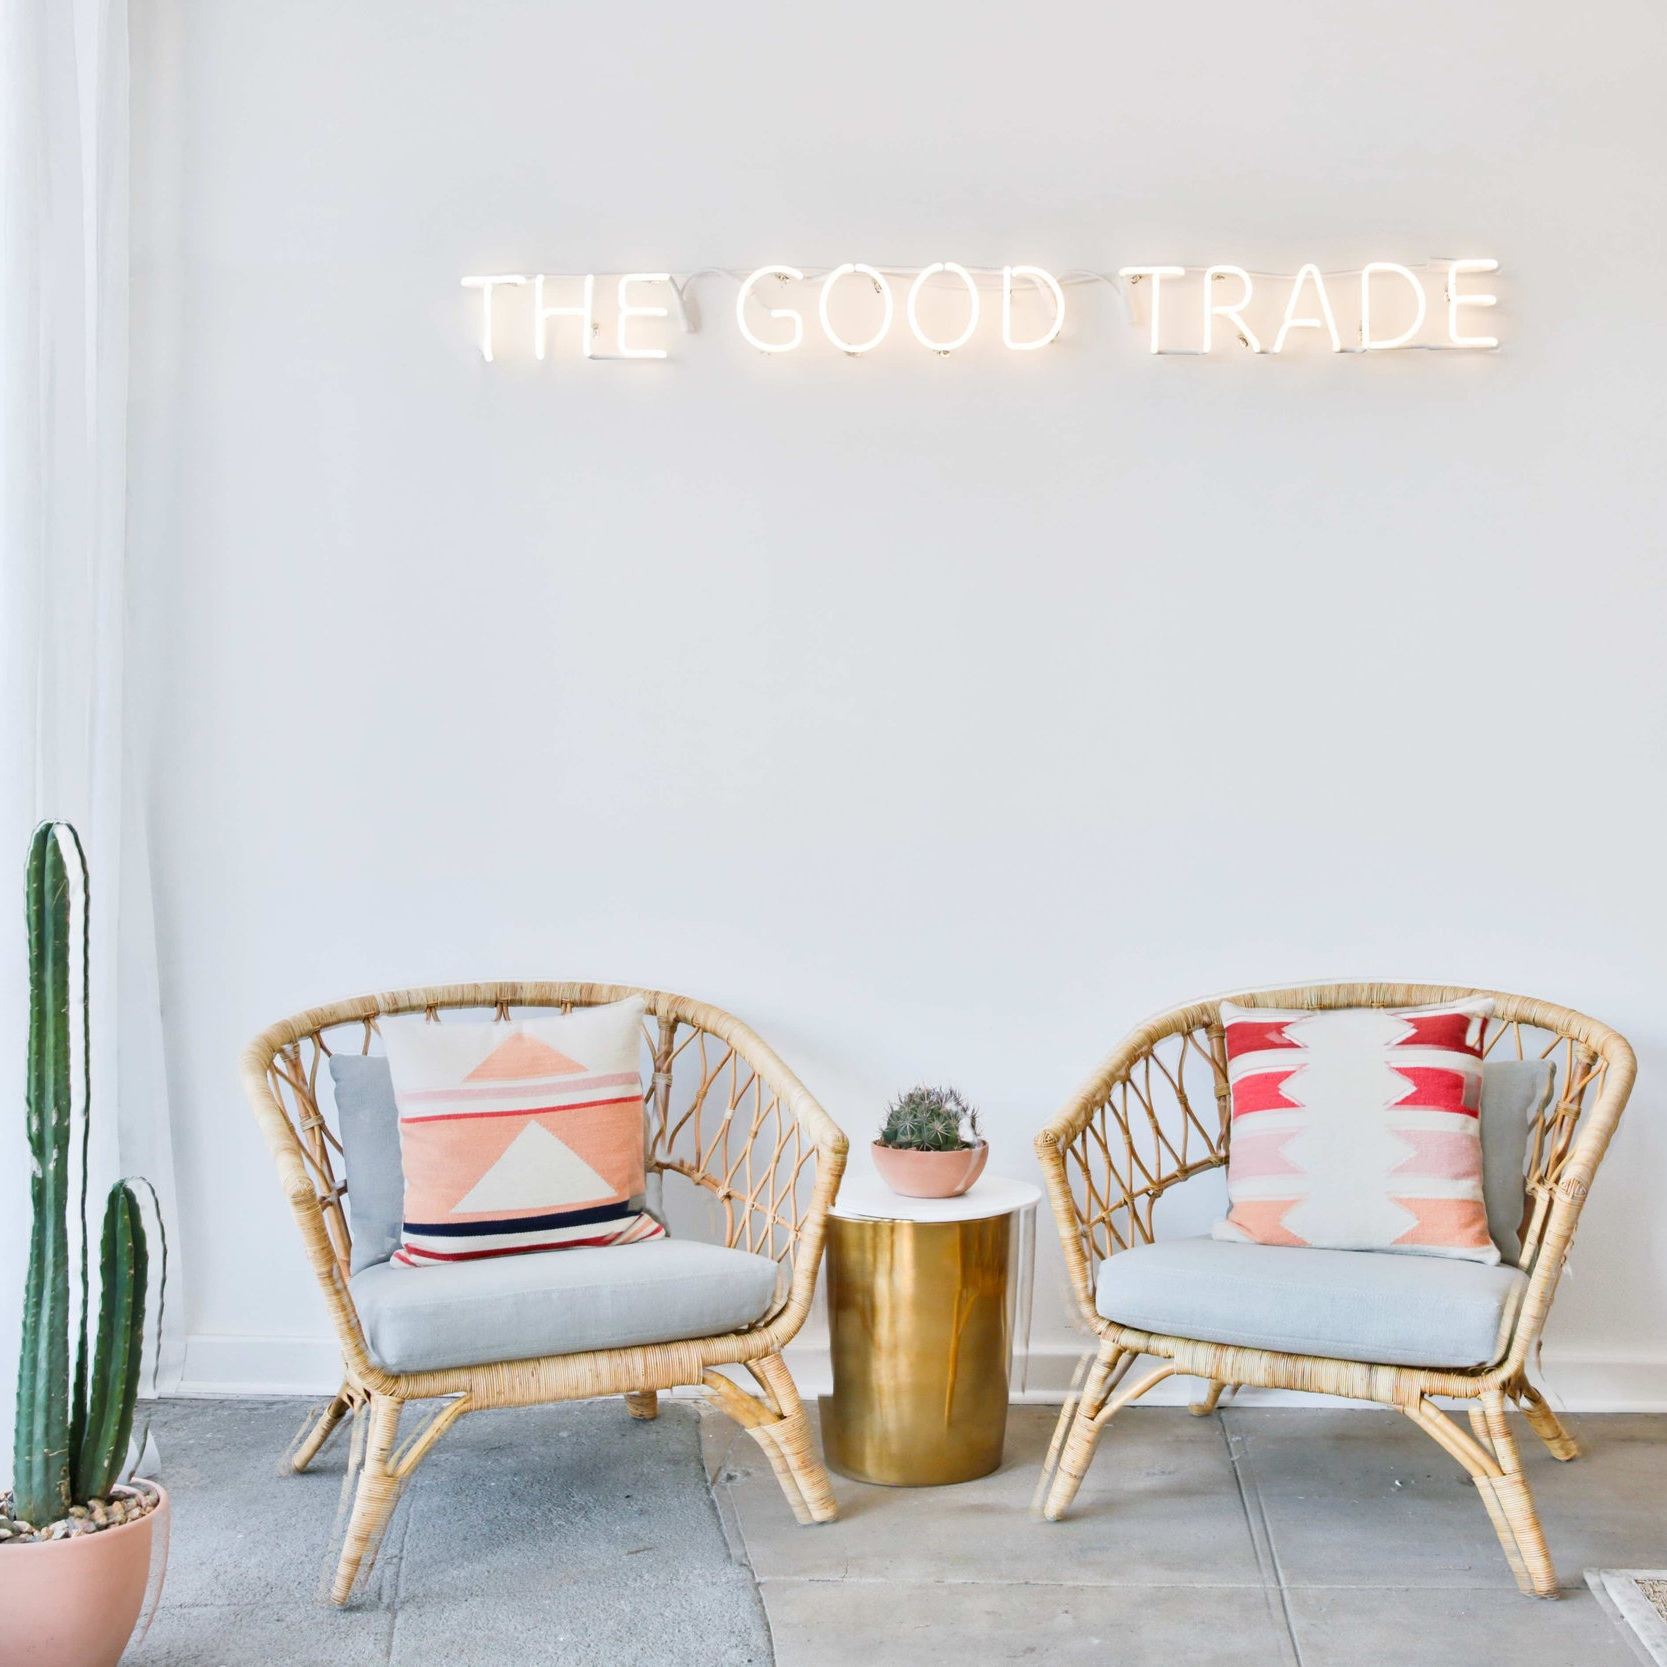 the good trade - The Good Trade is the premier online destination for millions of conscious women and men—covering conscious fashion, beauty, food, wellness, travel and lifestyle.Based in: USA